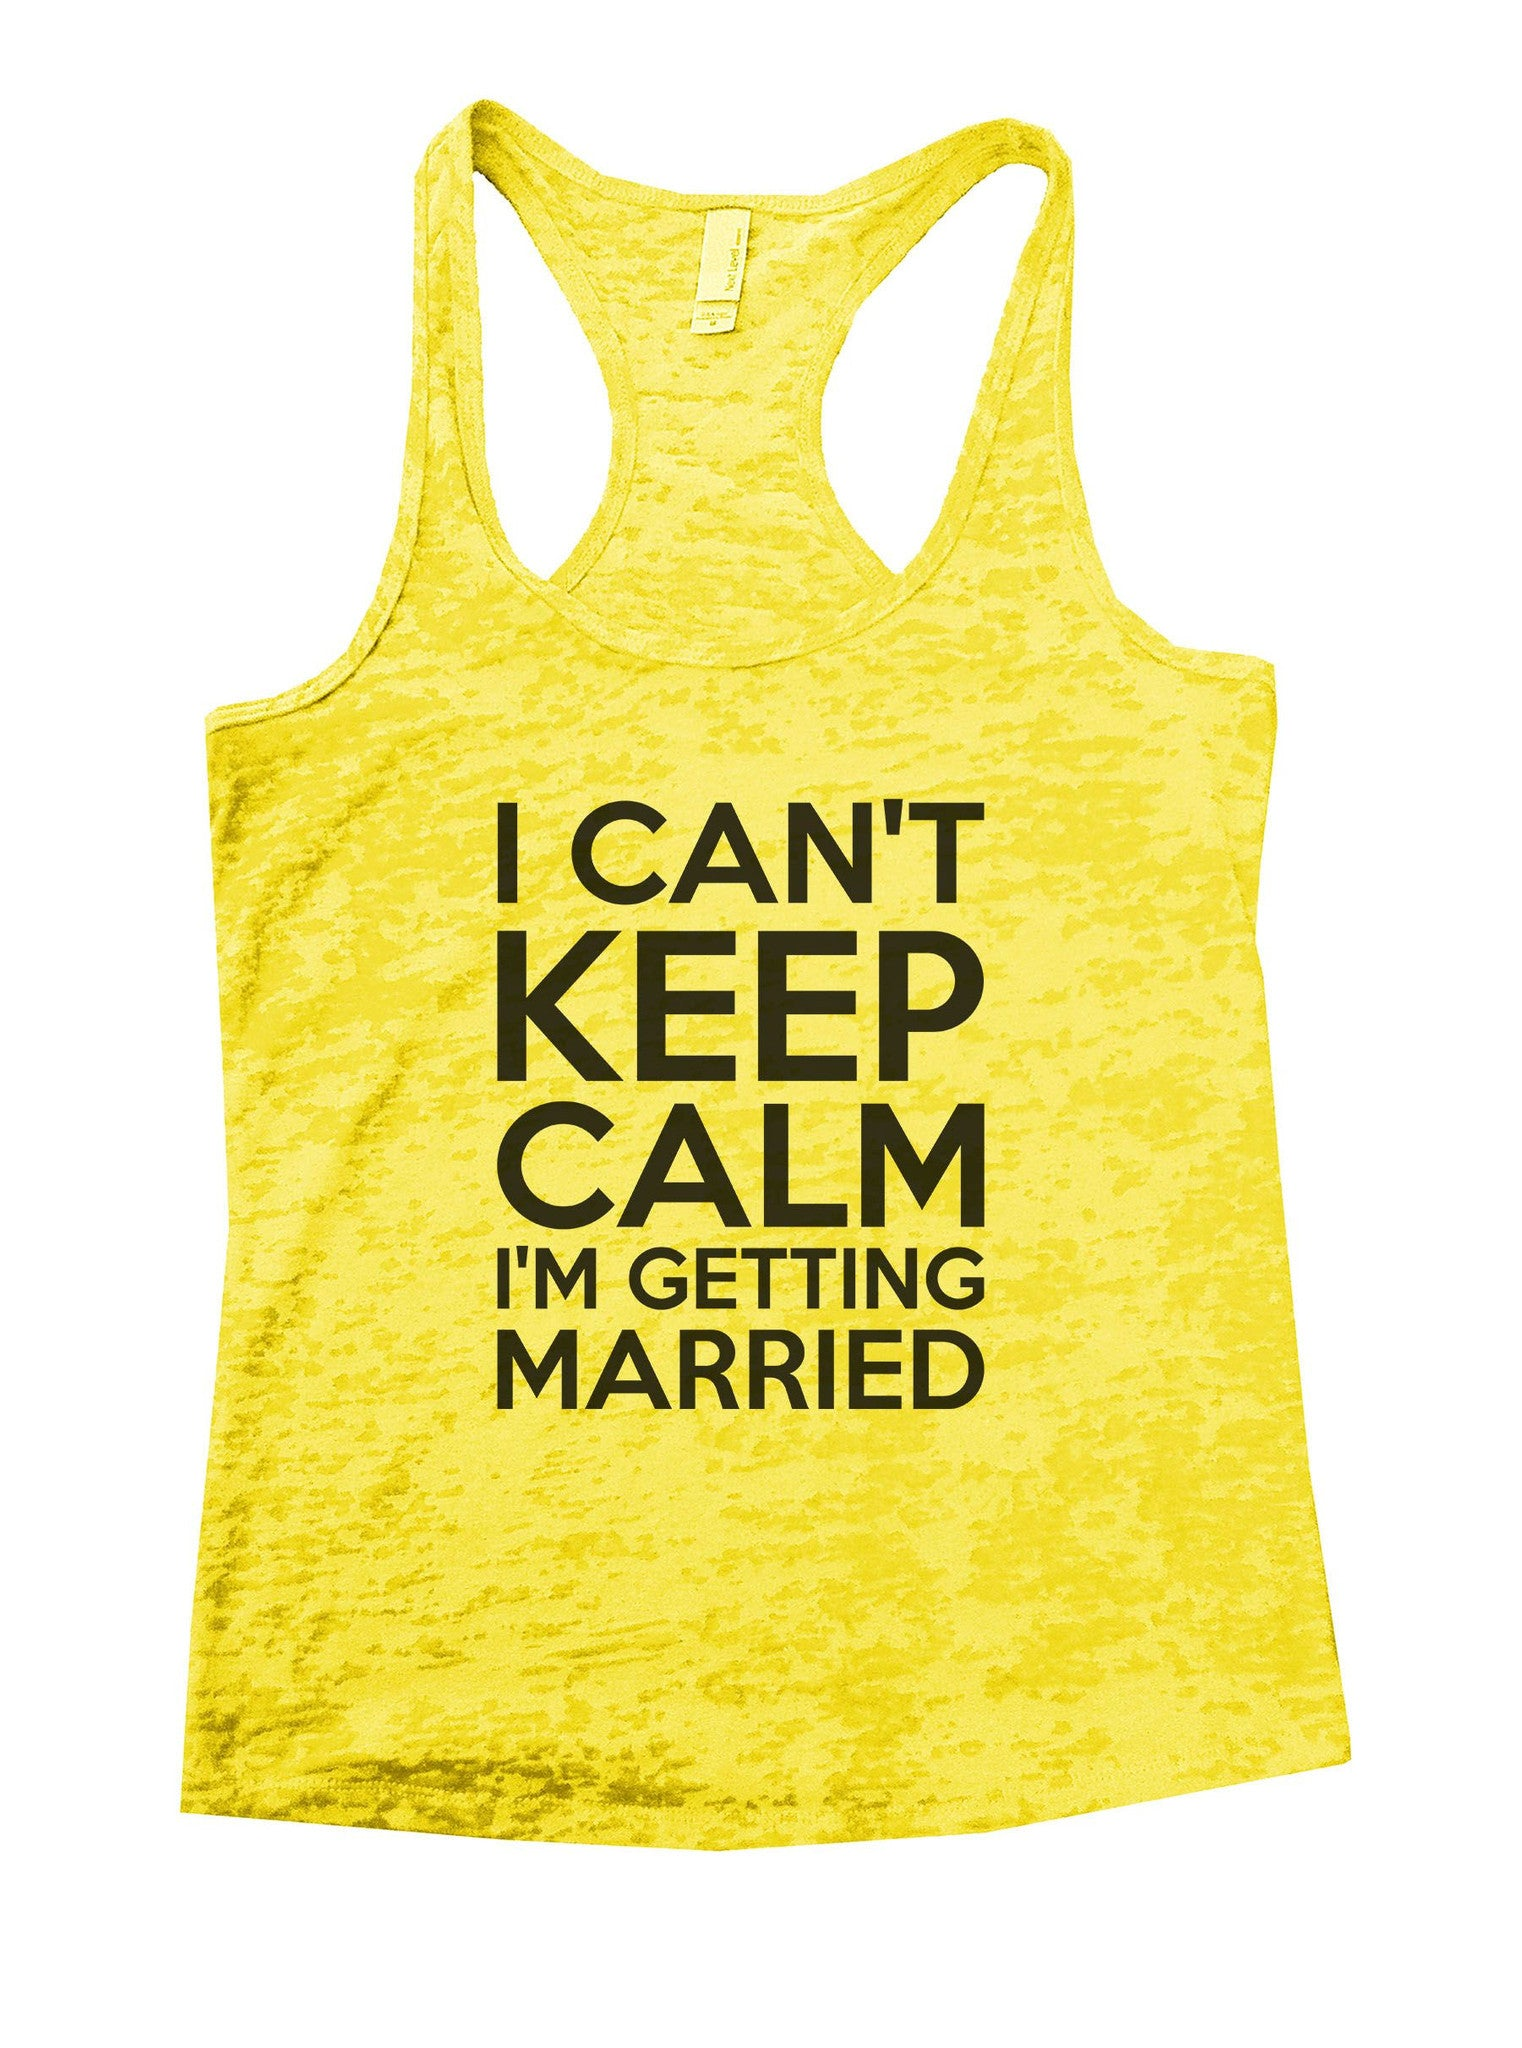 I Can't Keep Calm I'm Getting Married Burnout Tank Top By BurnoutTankTops.com - 887 - Funny Shirts Tank Tops Burnouts and Triblends  - 7